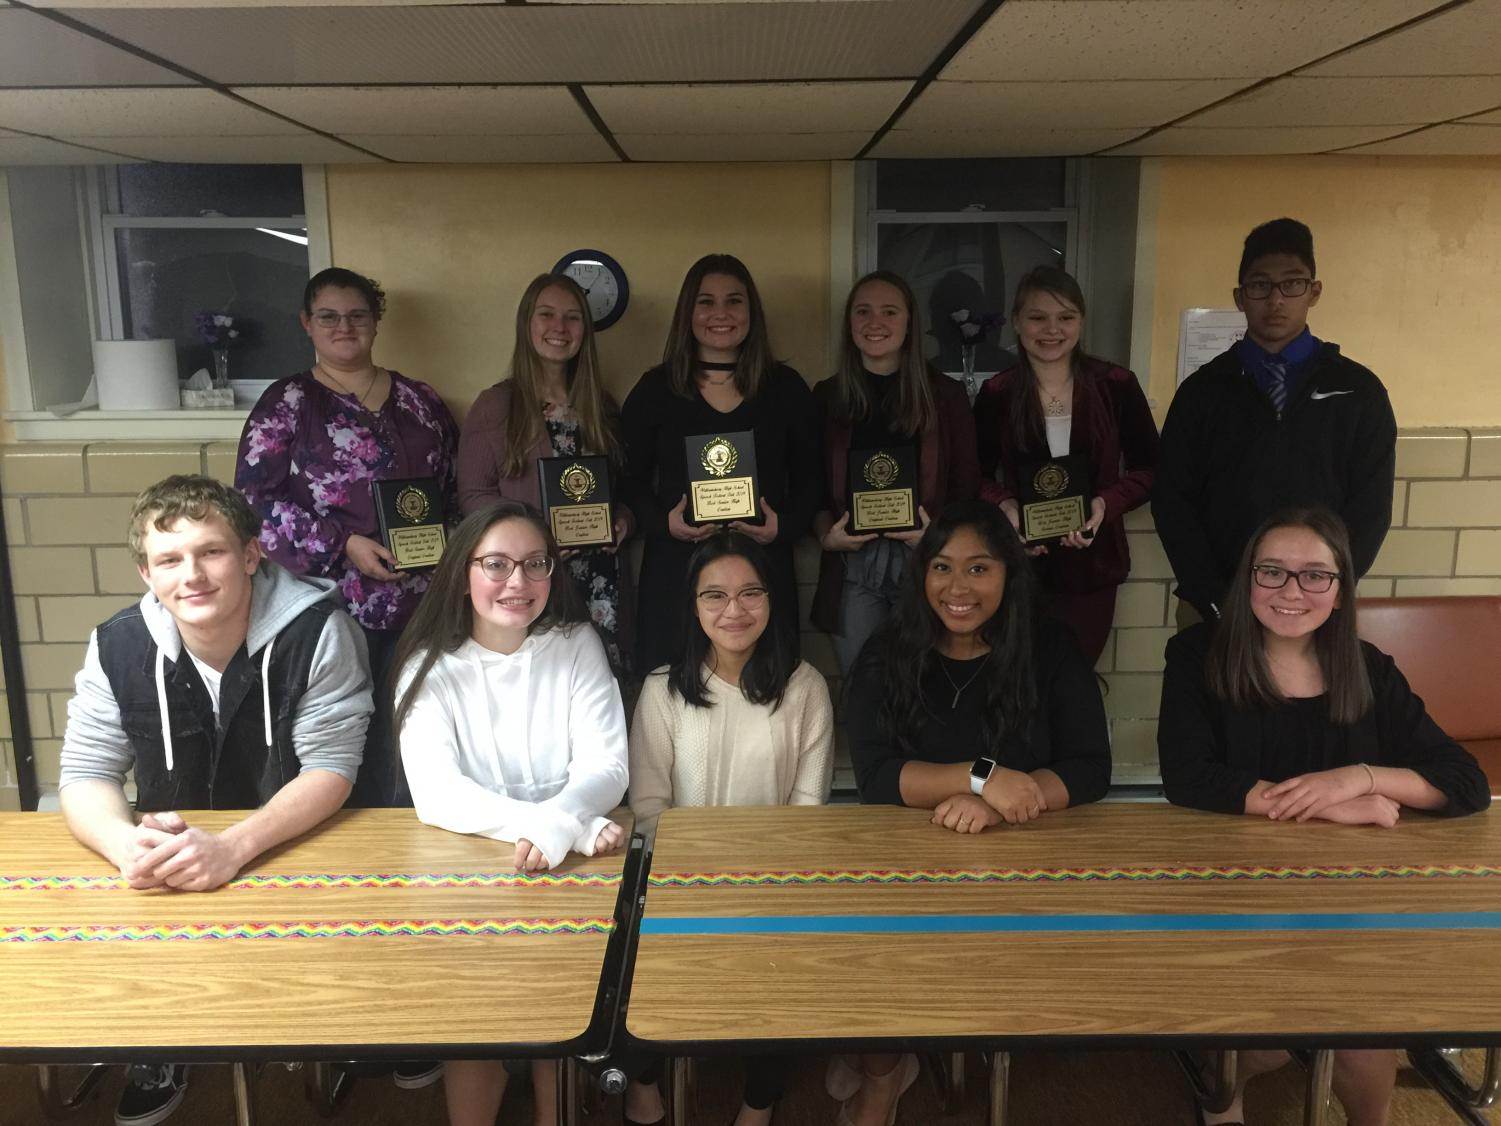 At the November 19 Fall Meet in Williamsburg, the Tyrone Speech Team took home five of the ten awards given to Central PA Speech League competitors with the highest scores.